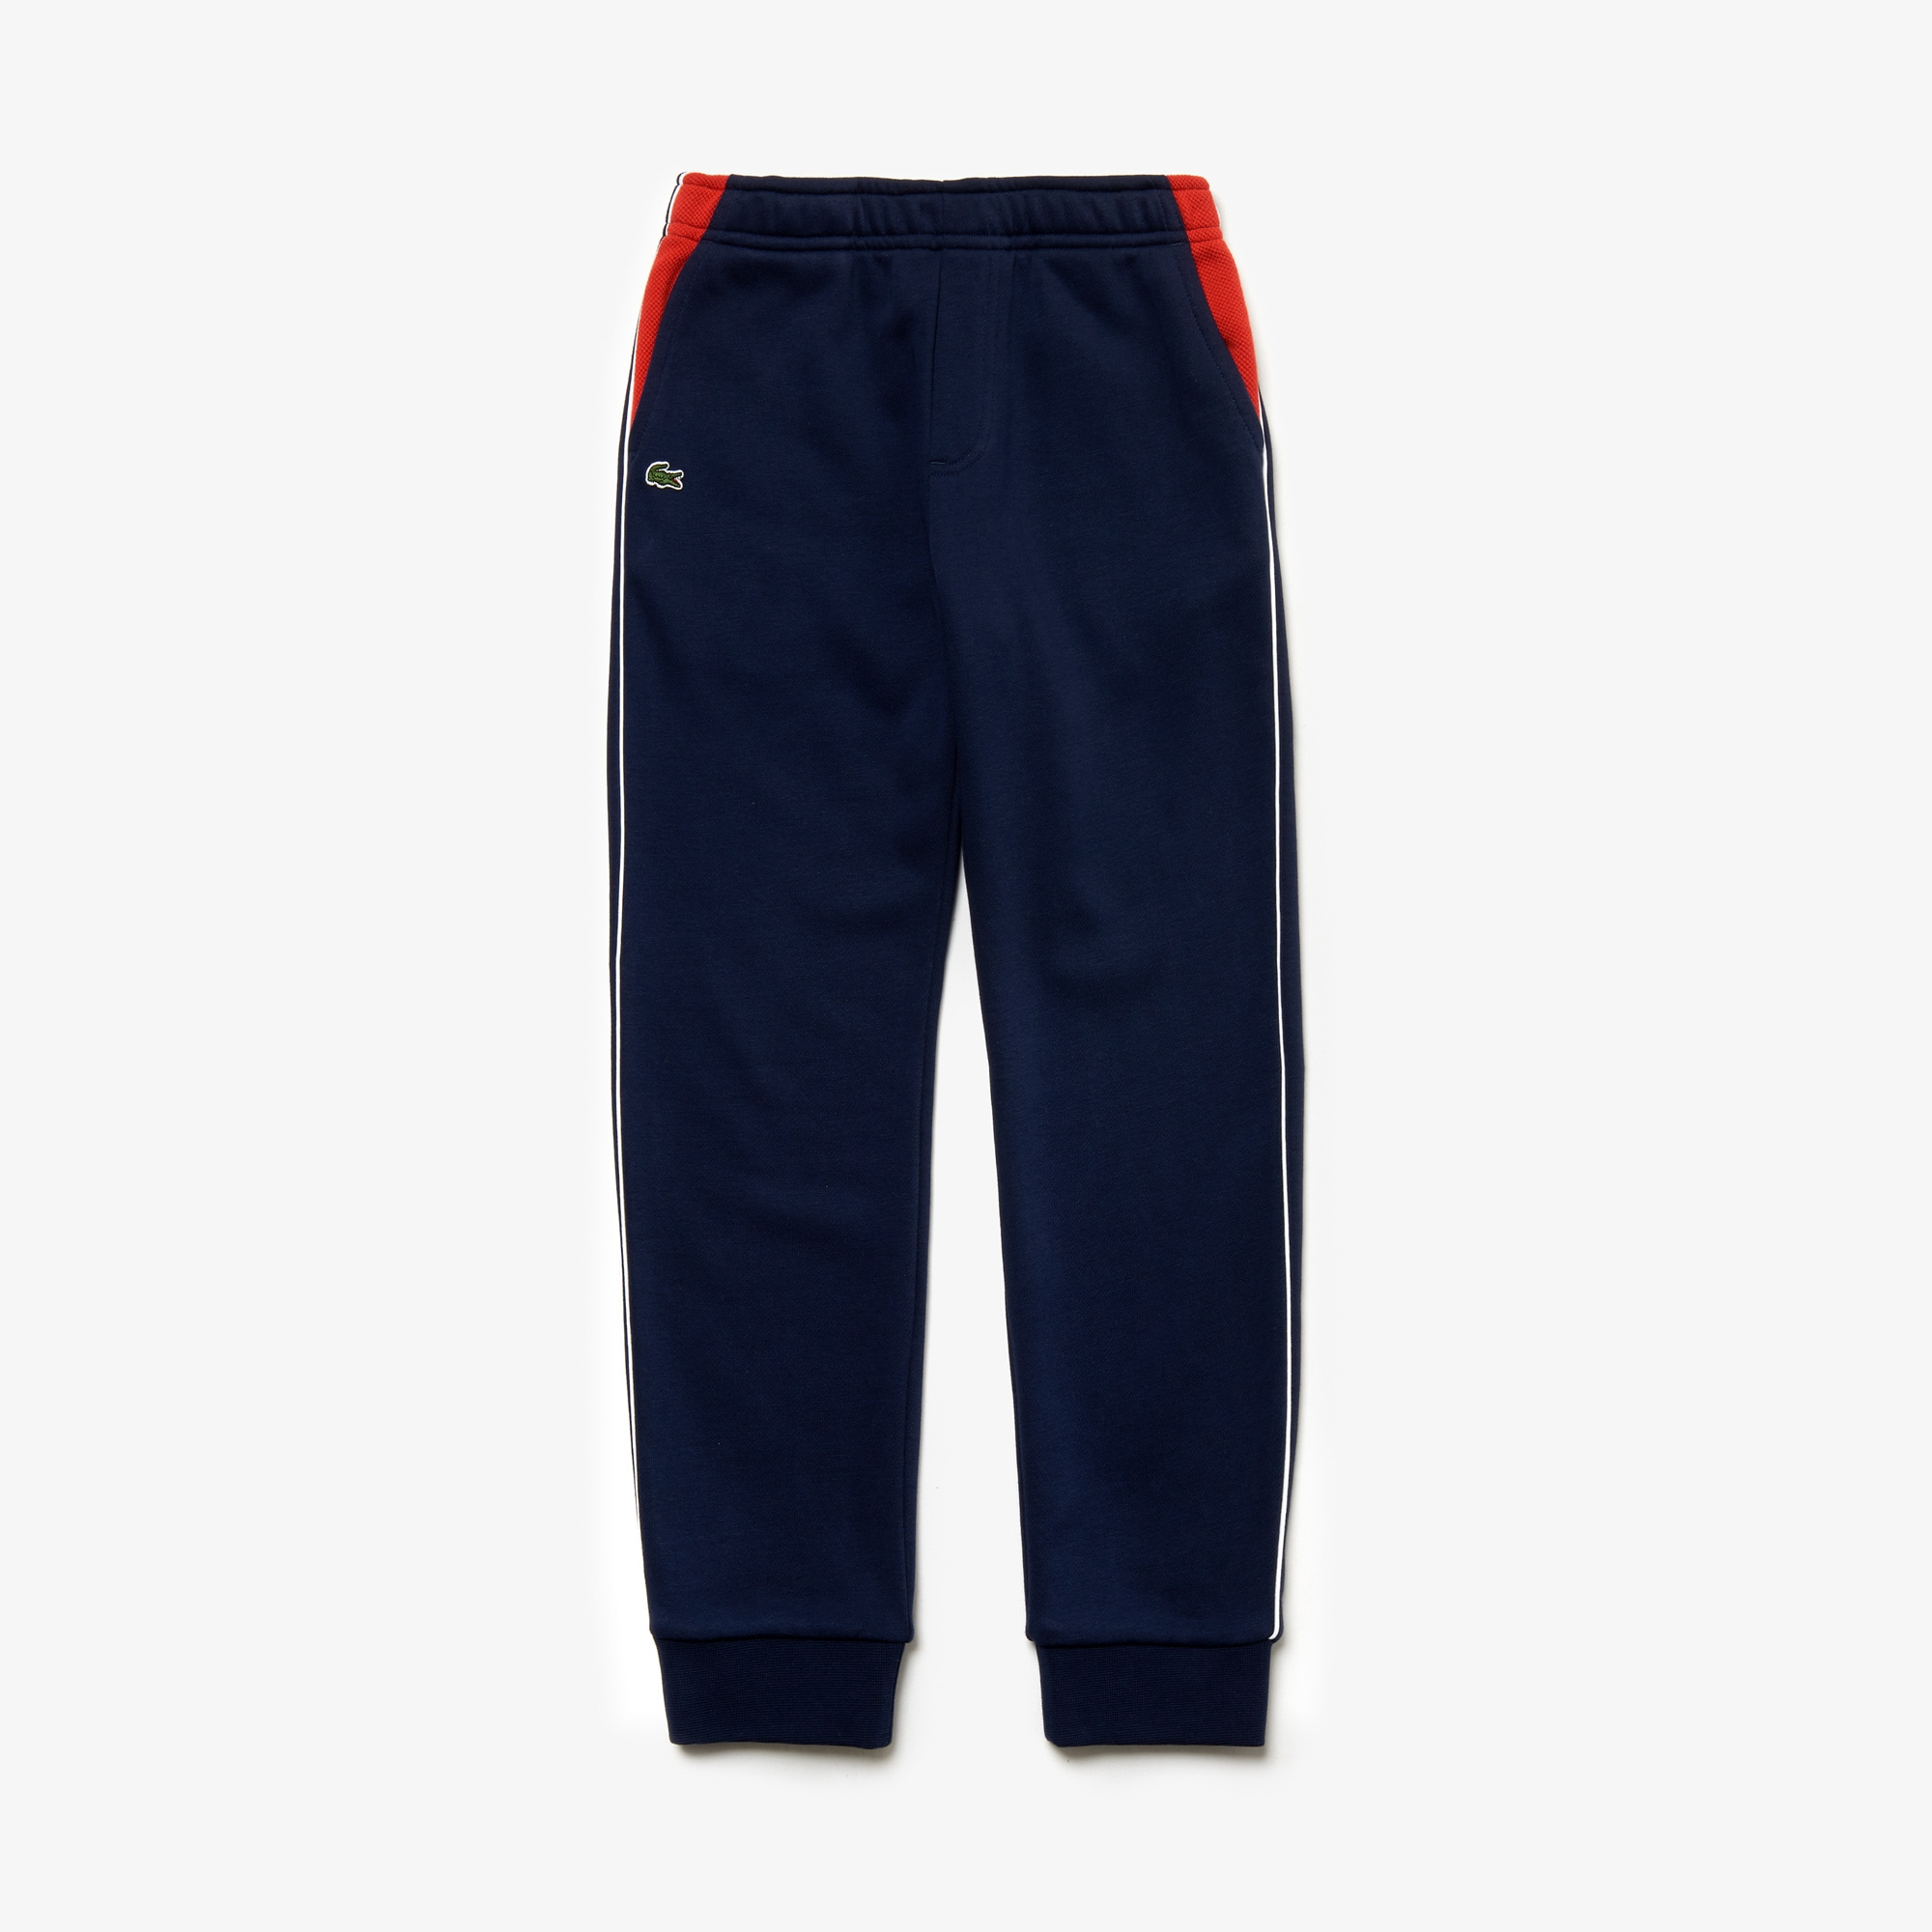 Boys' Fleece Jogging Pants